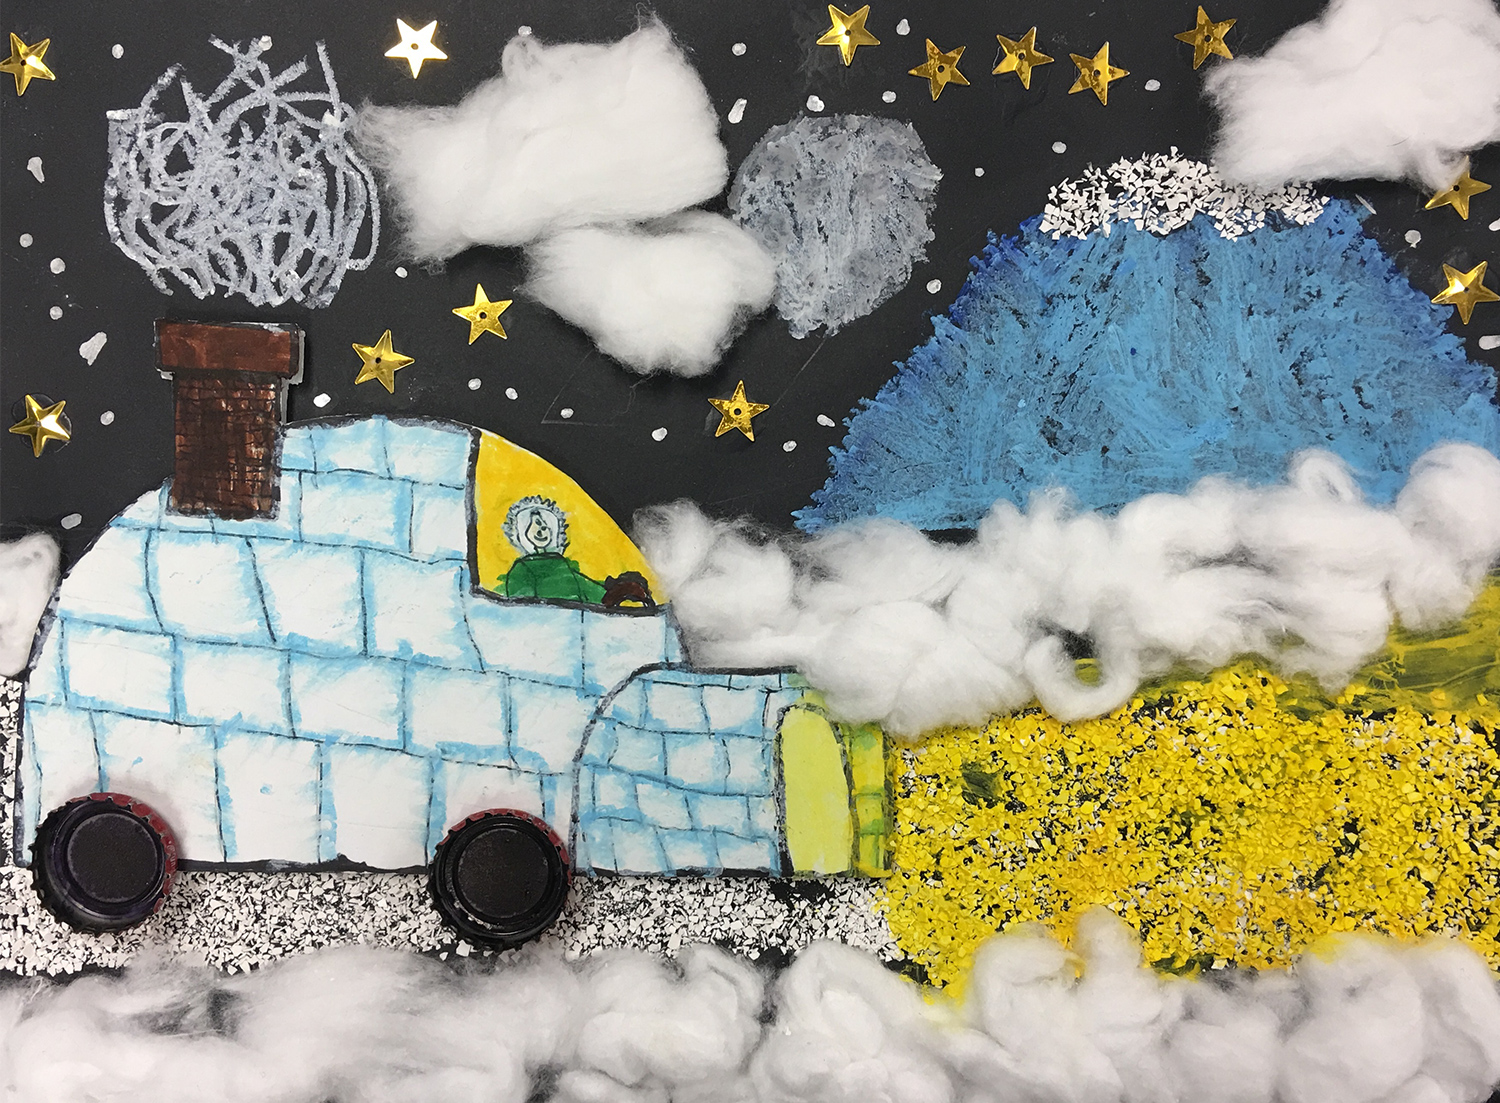 My Winter Car - Juan Miguel Gallermo, age 5